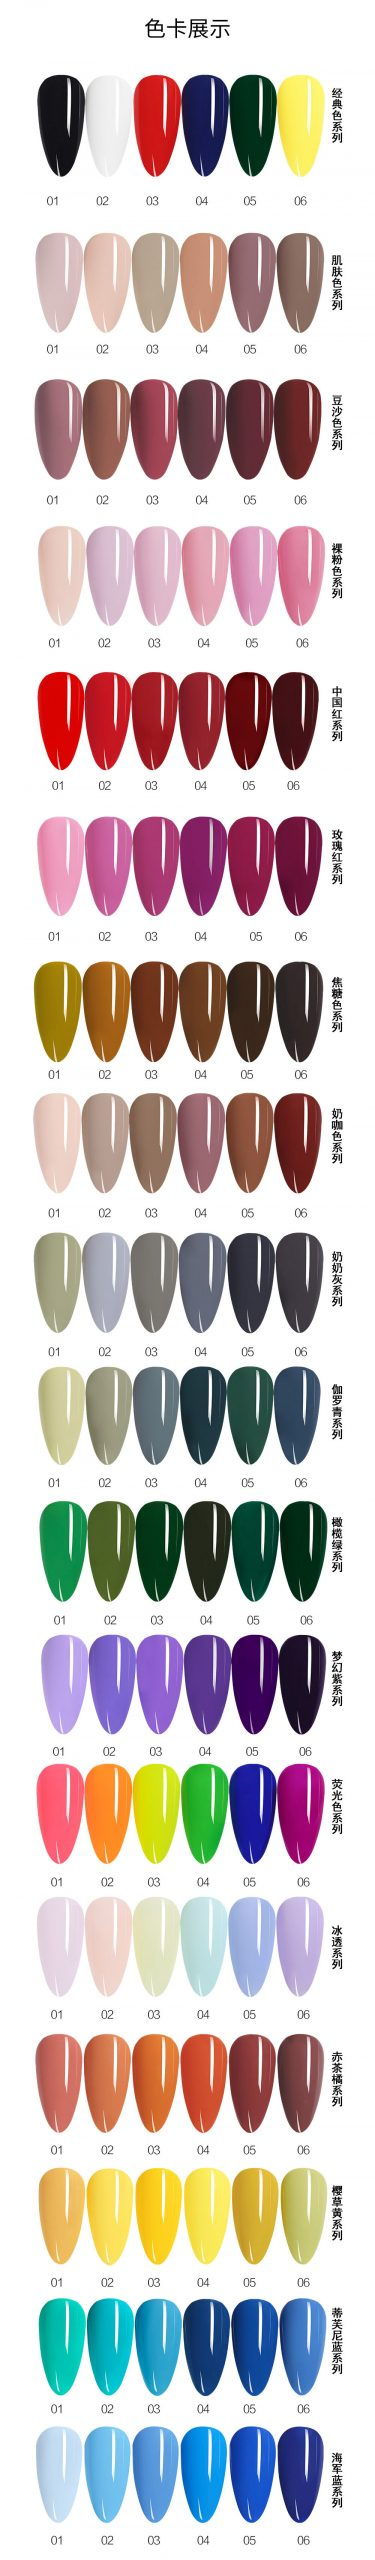 Red Nails Wholesale Solid Color Gel White Transparent Black Nail Polish